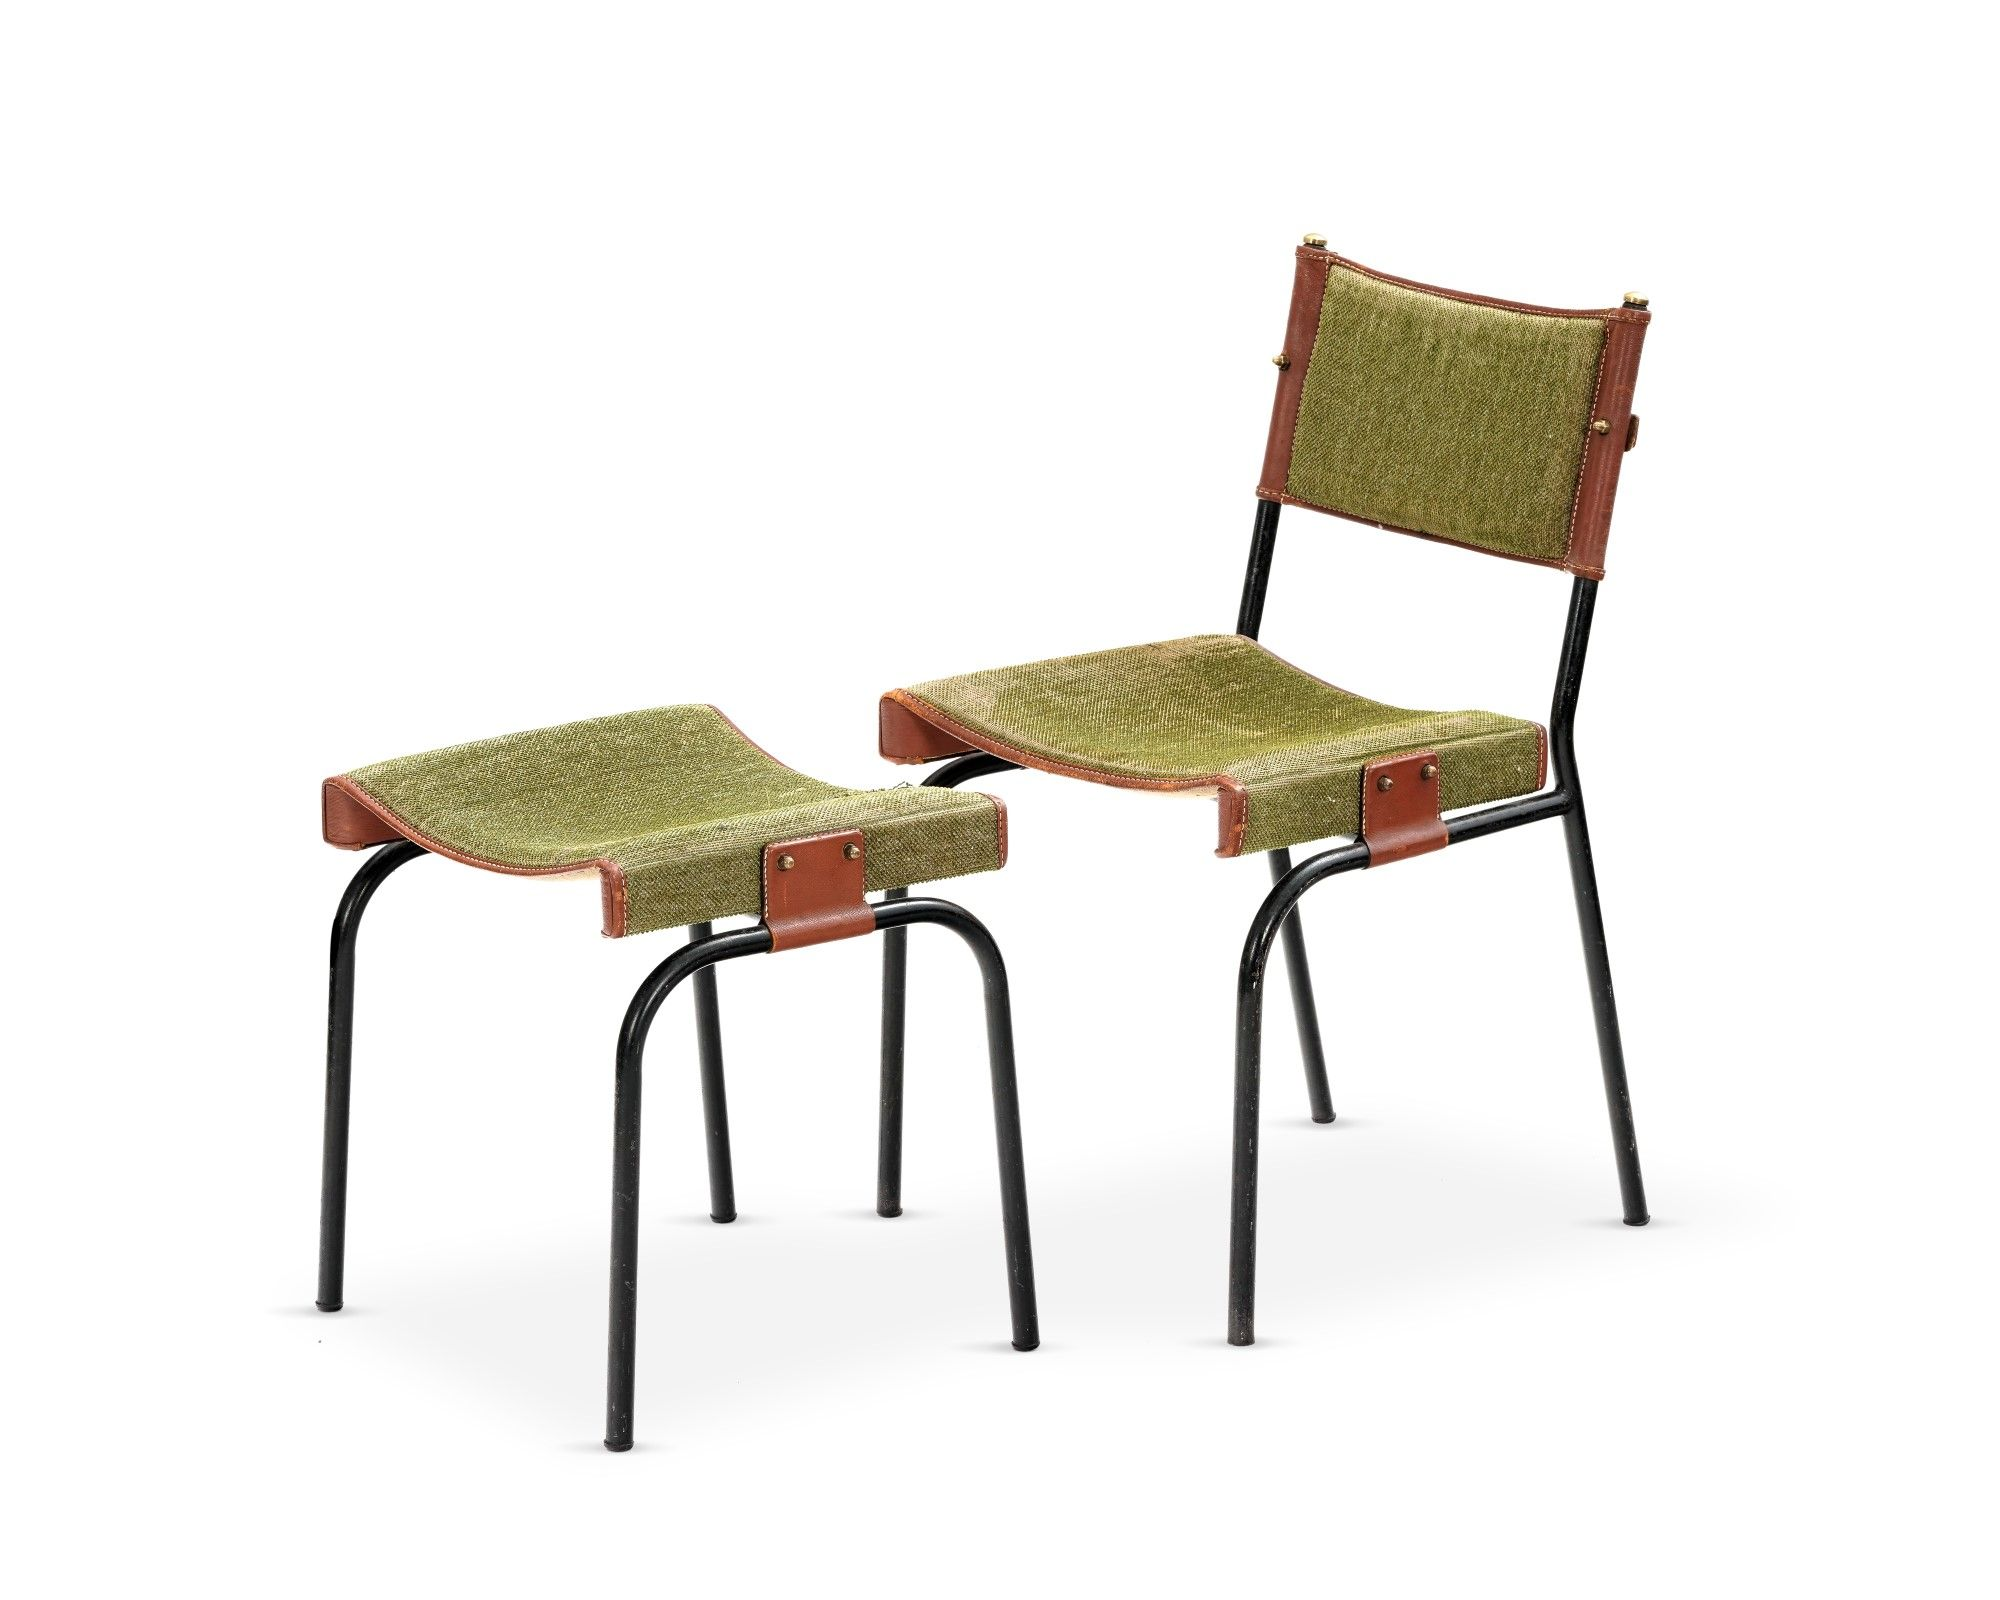 Epingle Sur Chairs